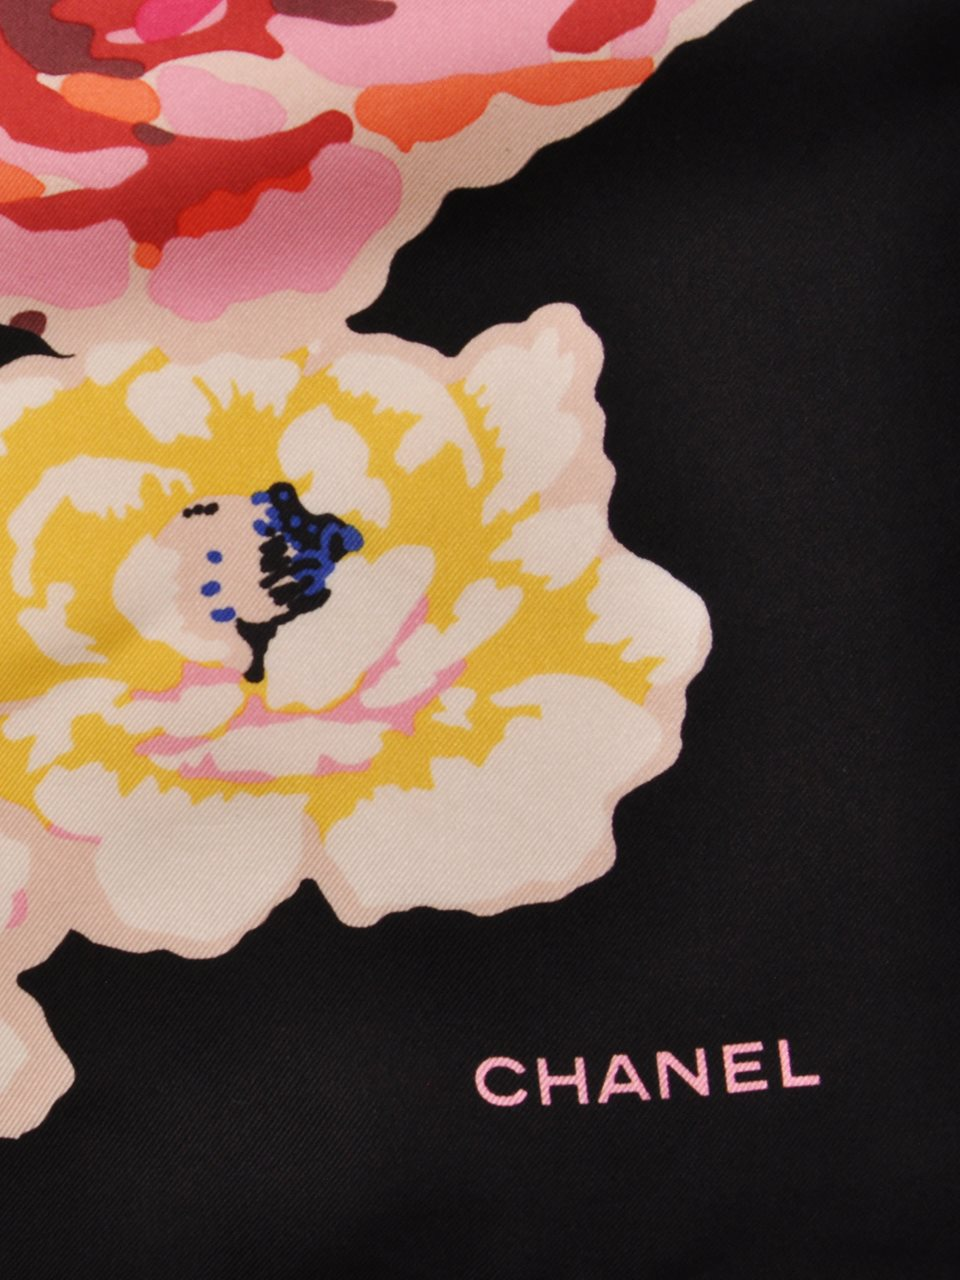 Chanel - Floral Print Silk Twill Scarf - Image 2 of 3